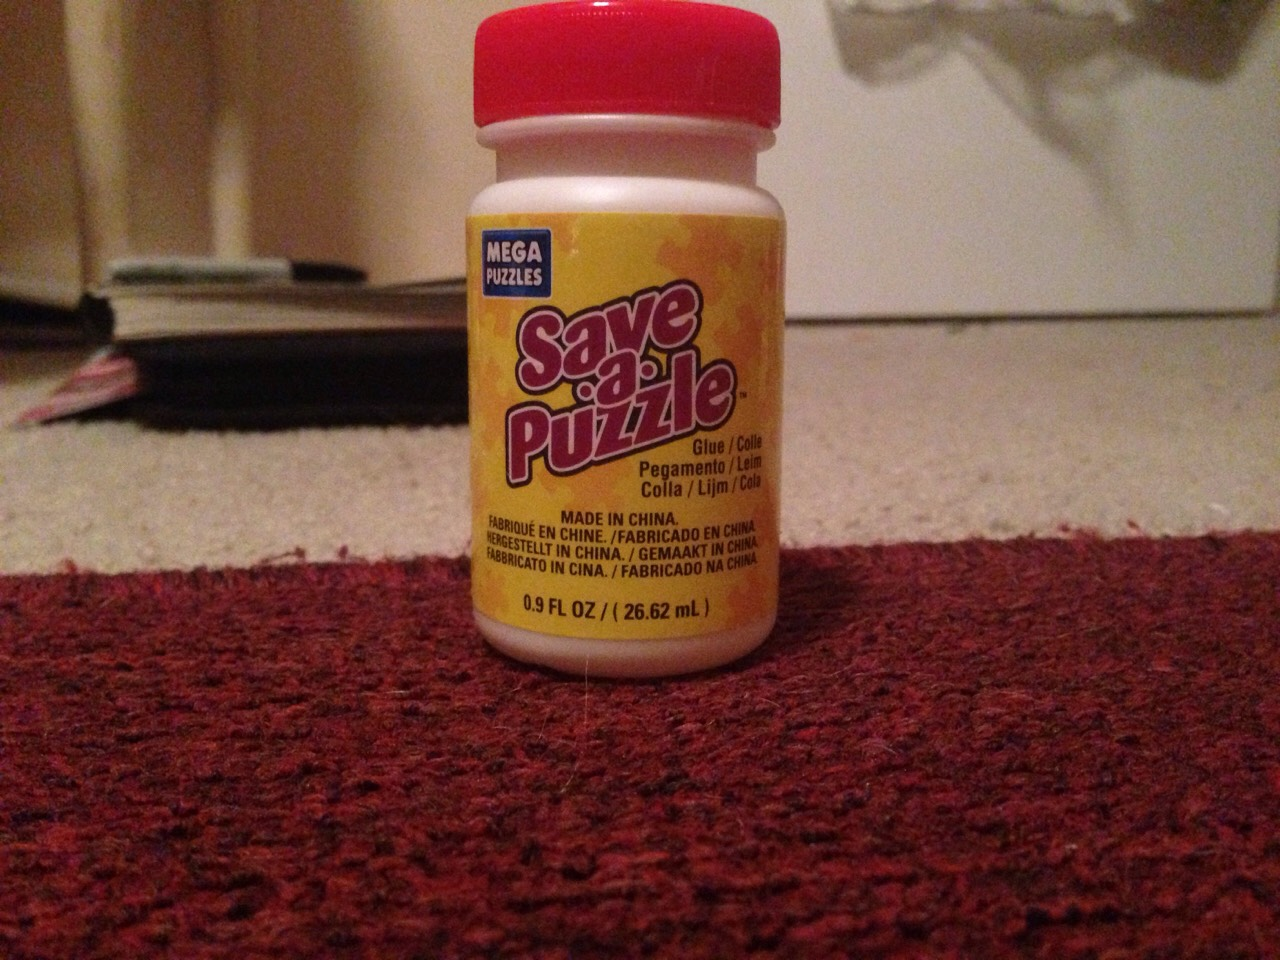 I used save a puzzle but any puzzle glue will work. Make sure it's puzzle glue not regular glue.